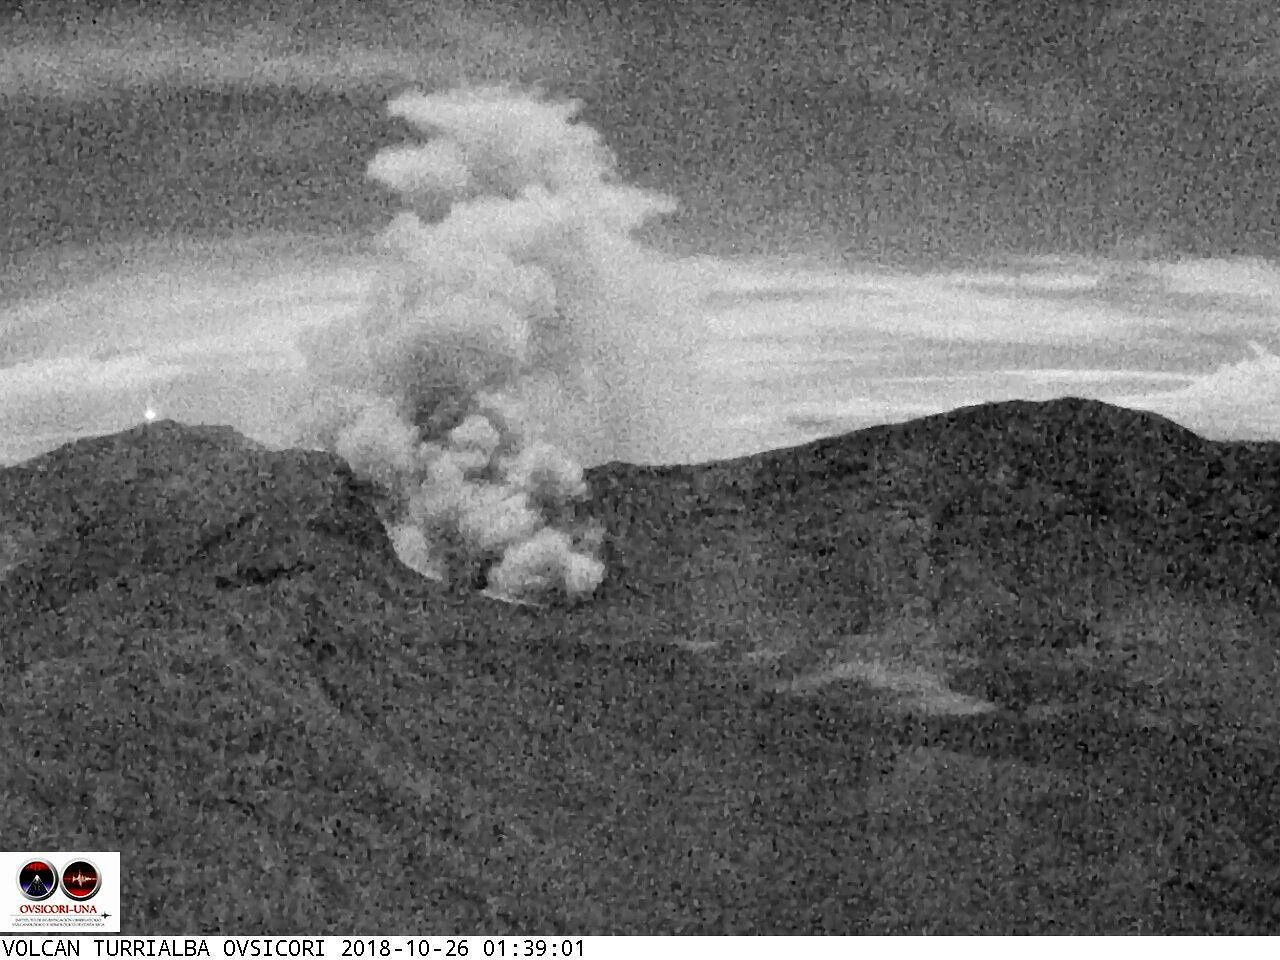 Turrialba - eruptive plume of 26.10.2018 / 01h39 - Webcam Ovsicori